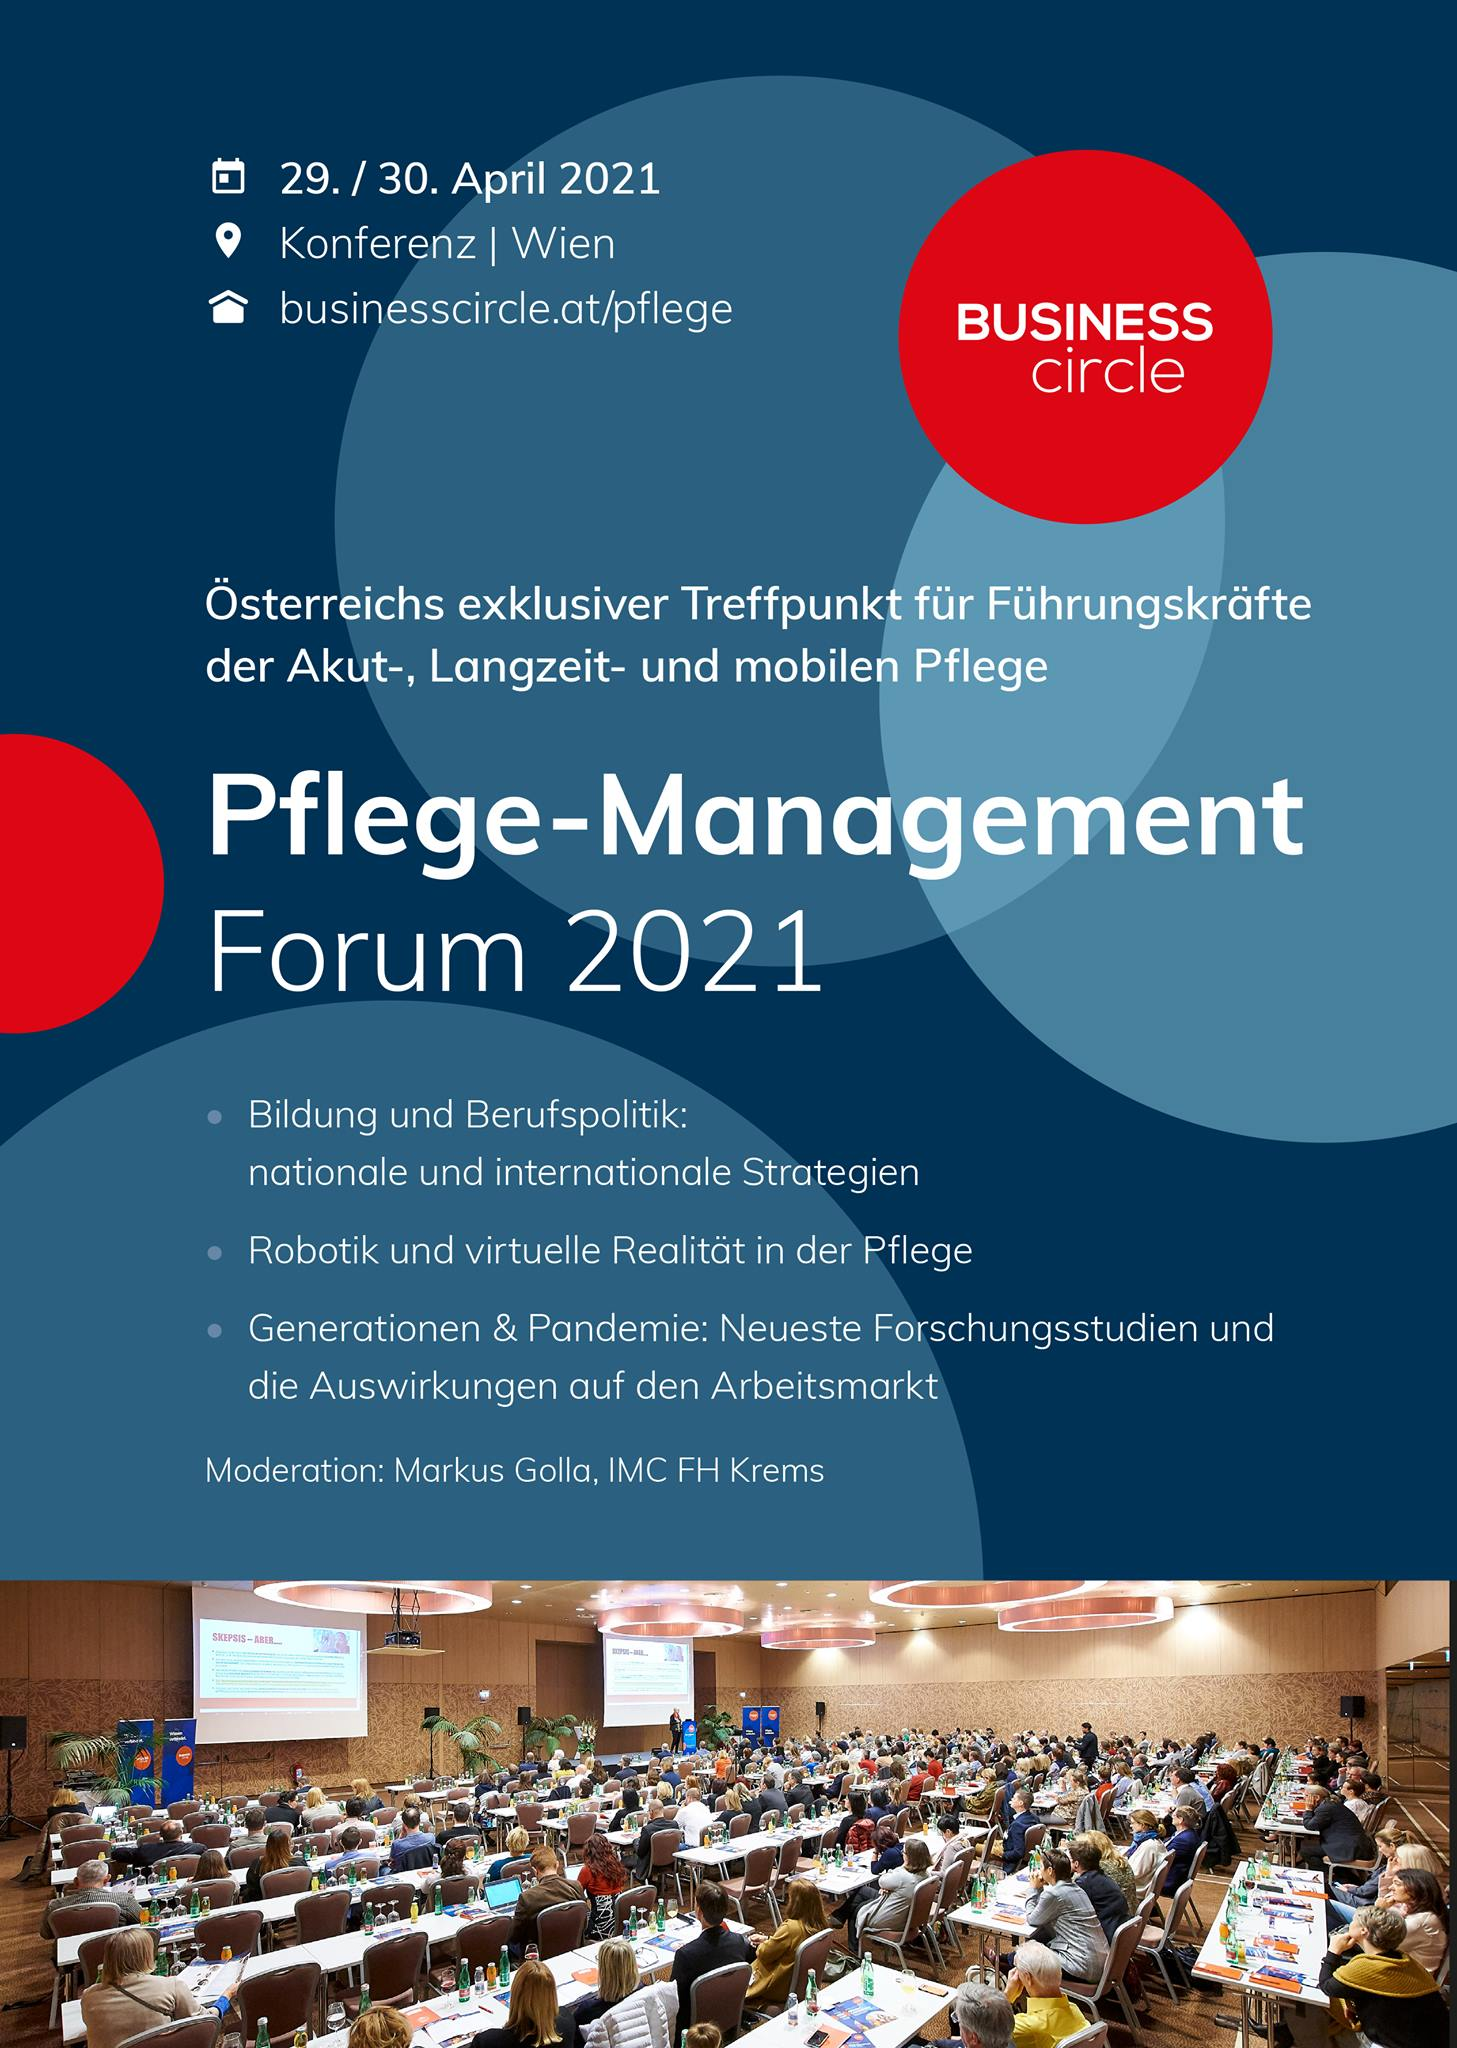 Pflegemanagement-Forum 2021 - Wien